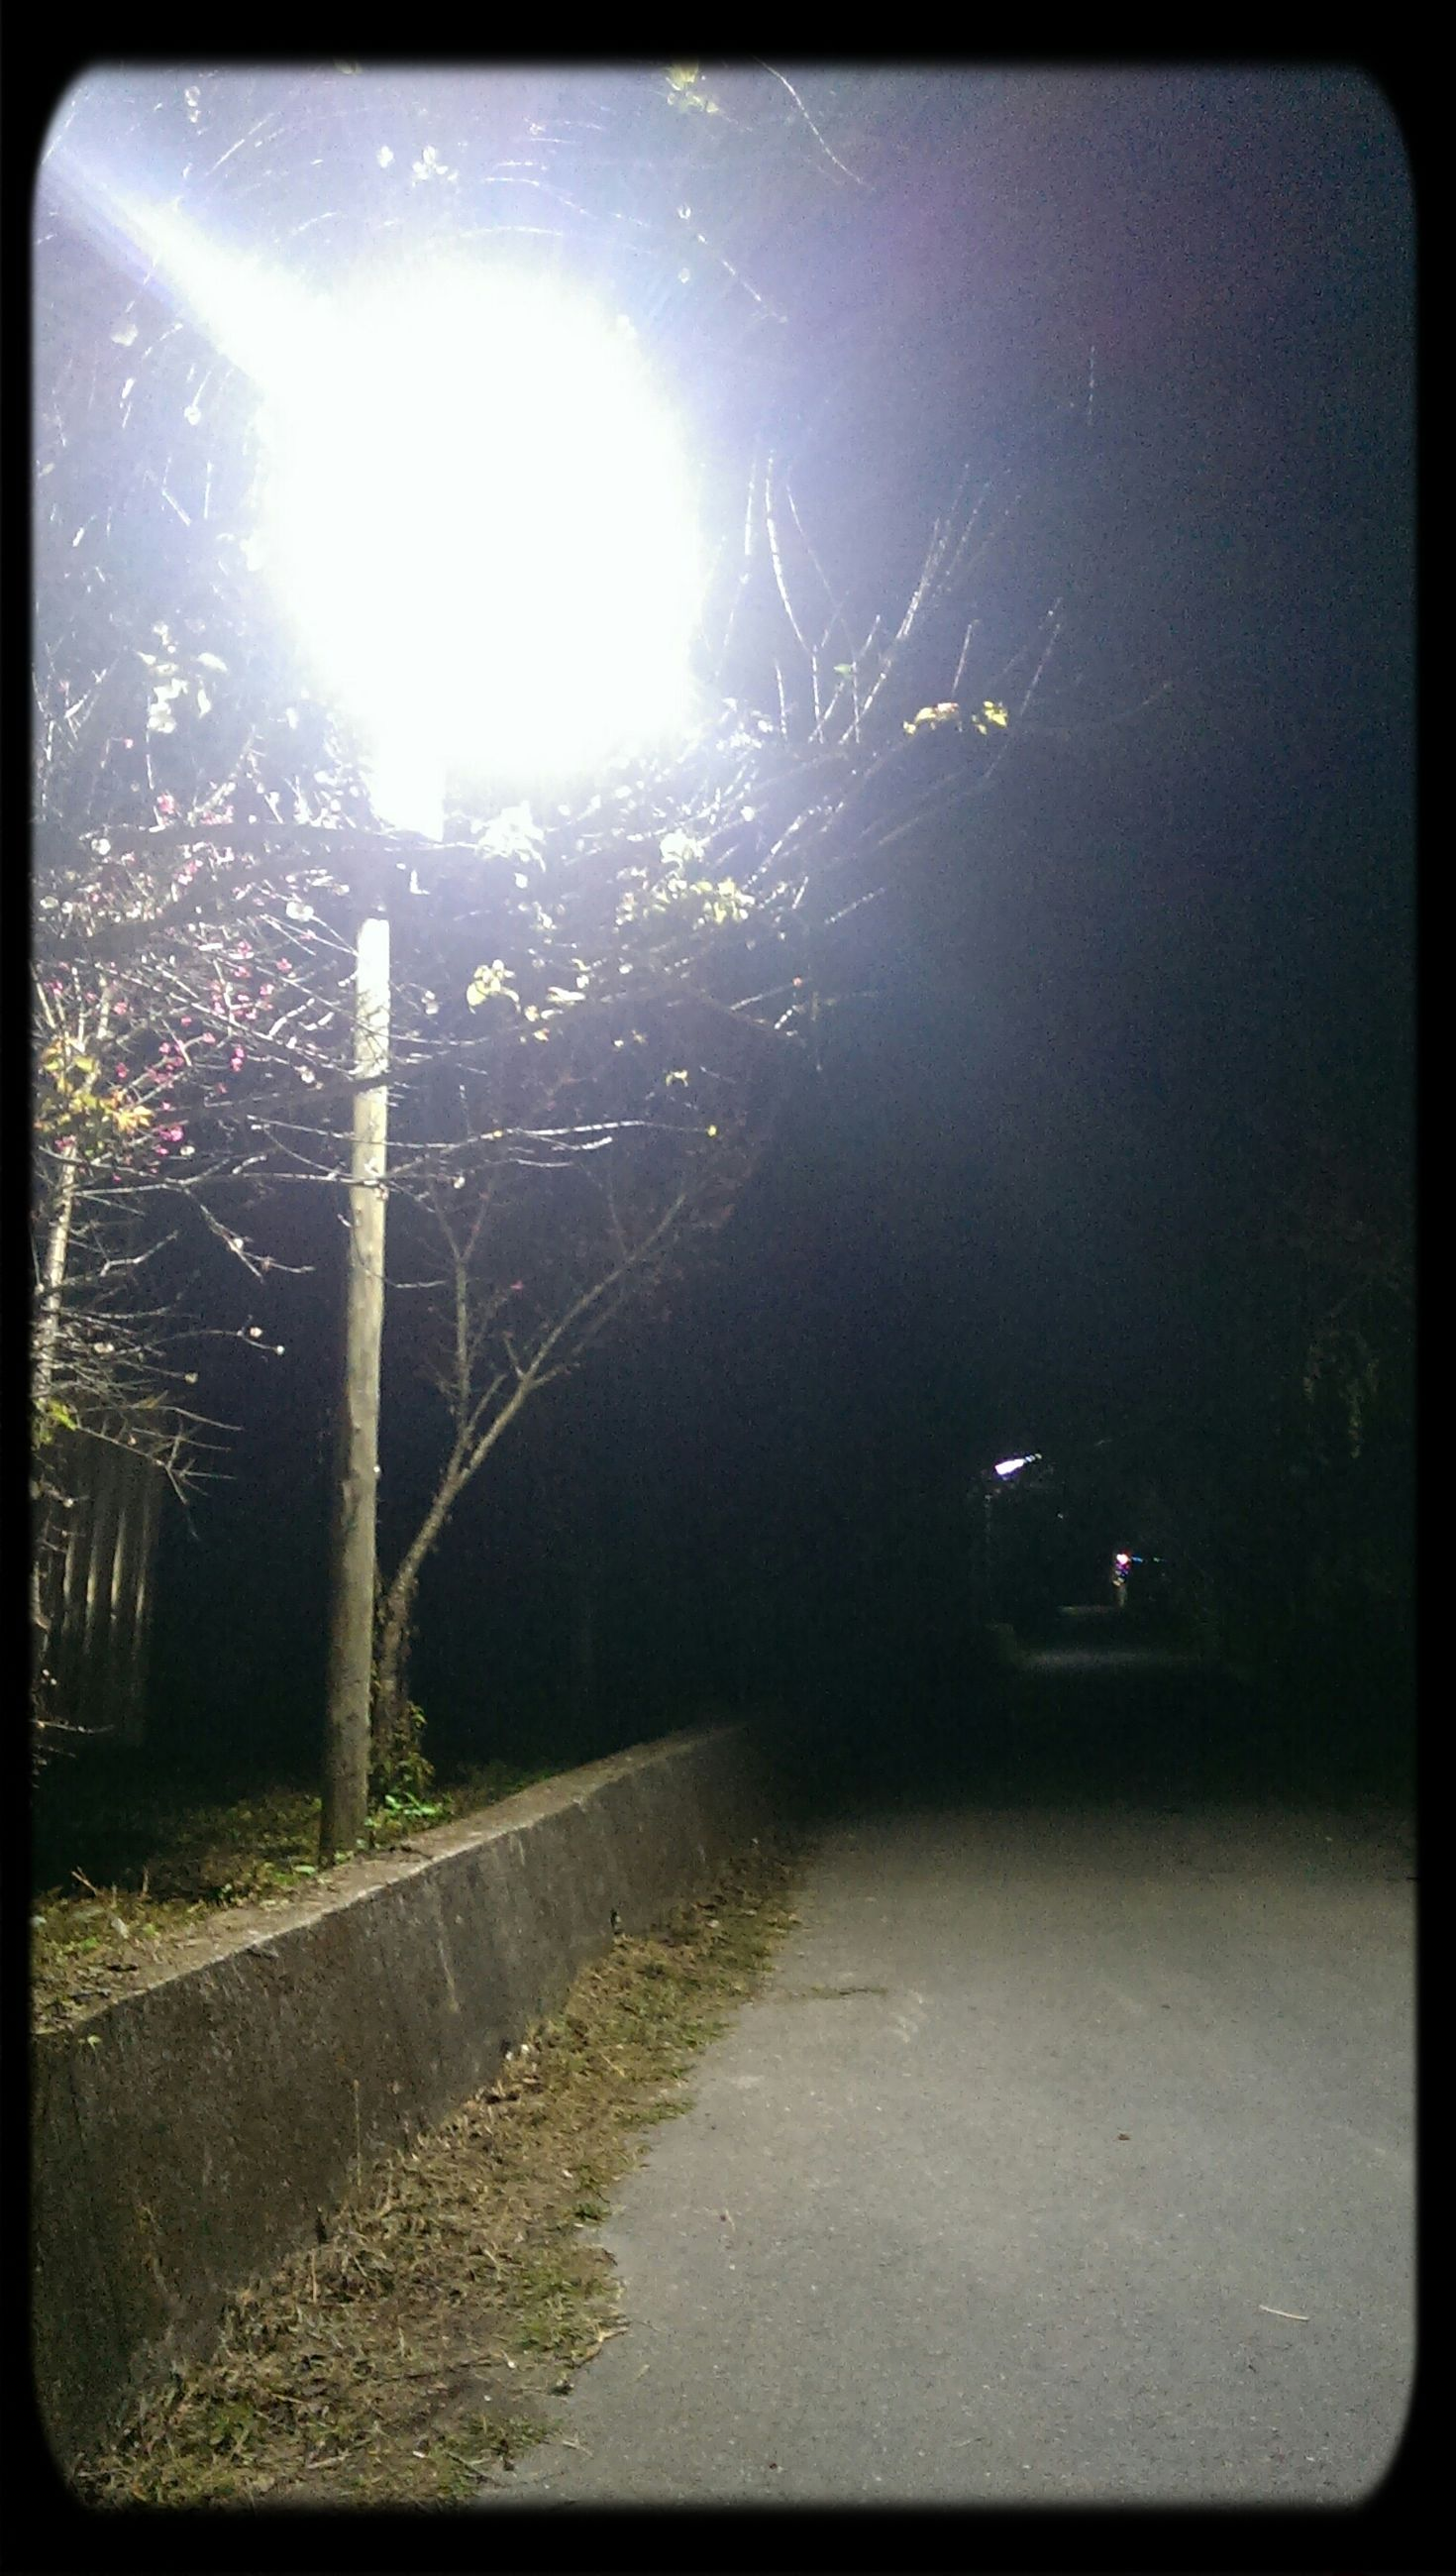 transfer print, street light, the way forward, transportation, road, auto post production filter, street, night, illuminated, sky, diminishing perspective, lens flare, lighting equipment, outdoors, built structure, no people, tree, sunlight, connection, vanishing point